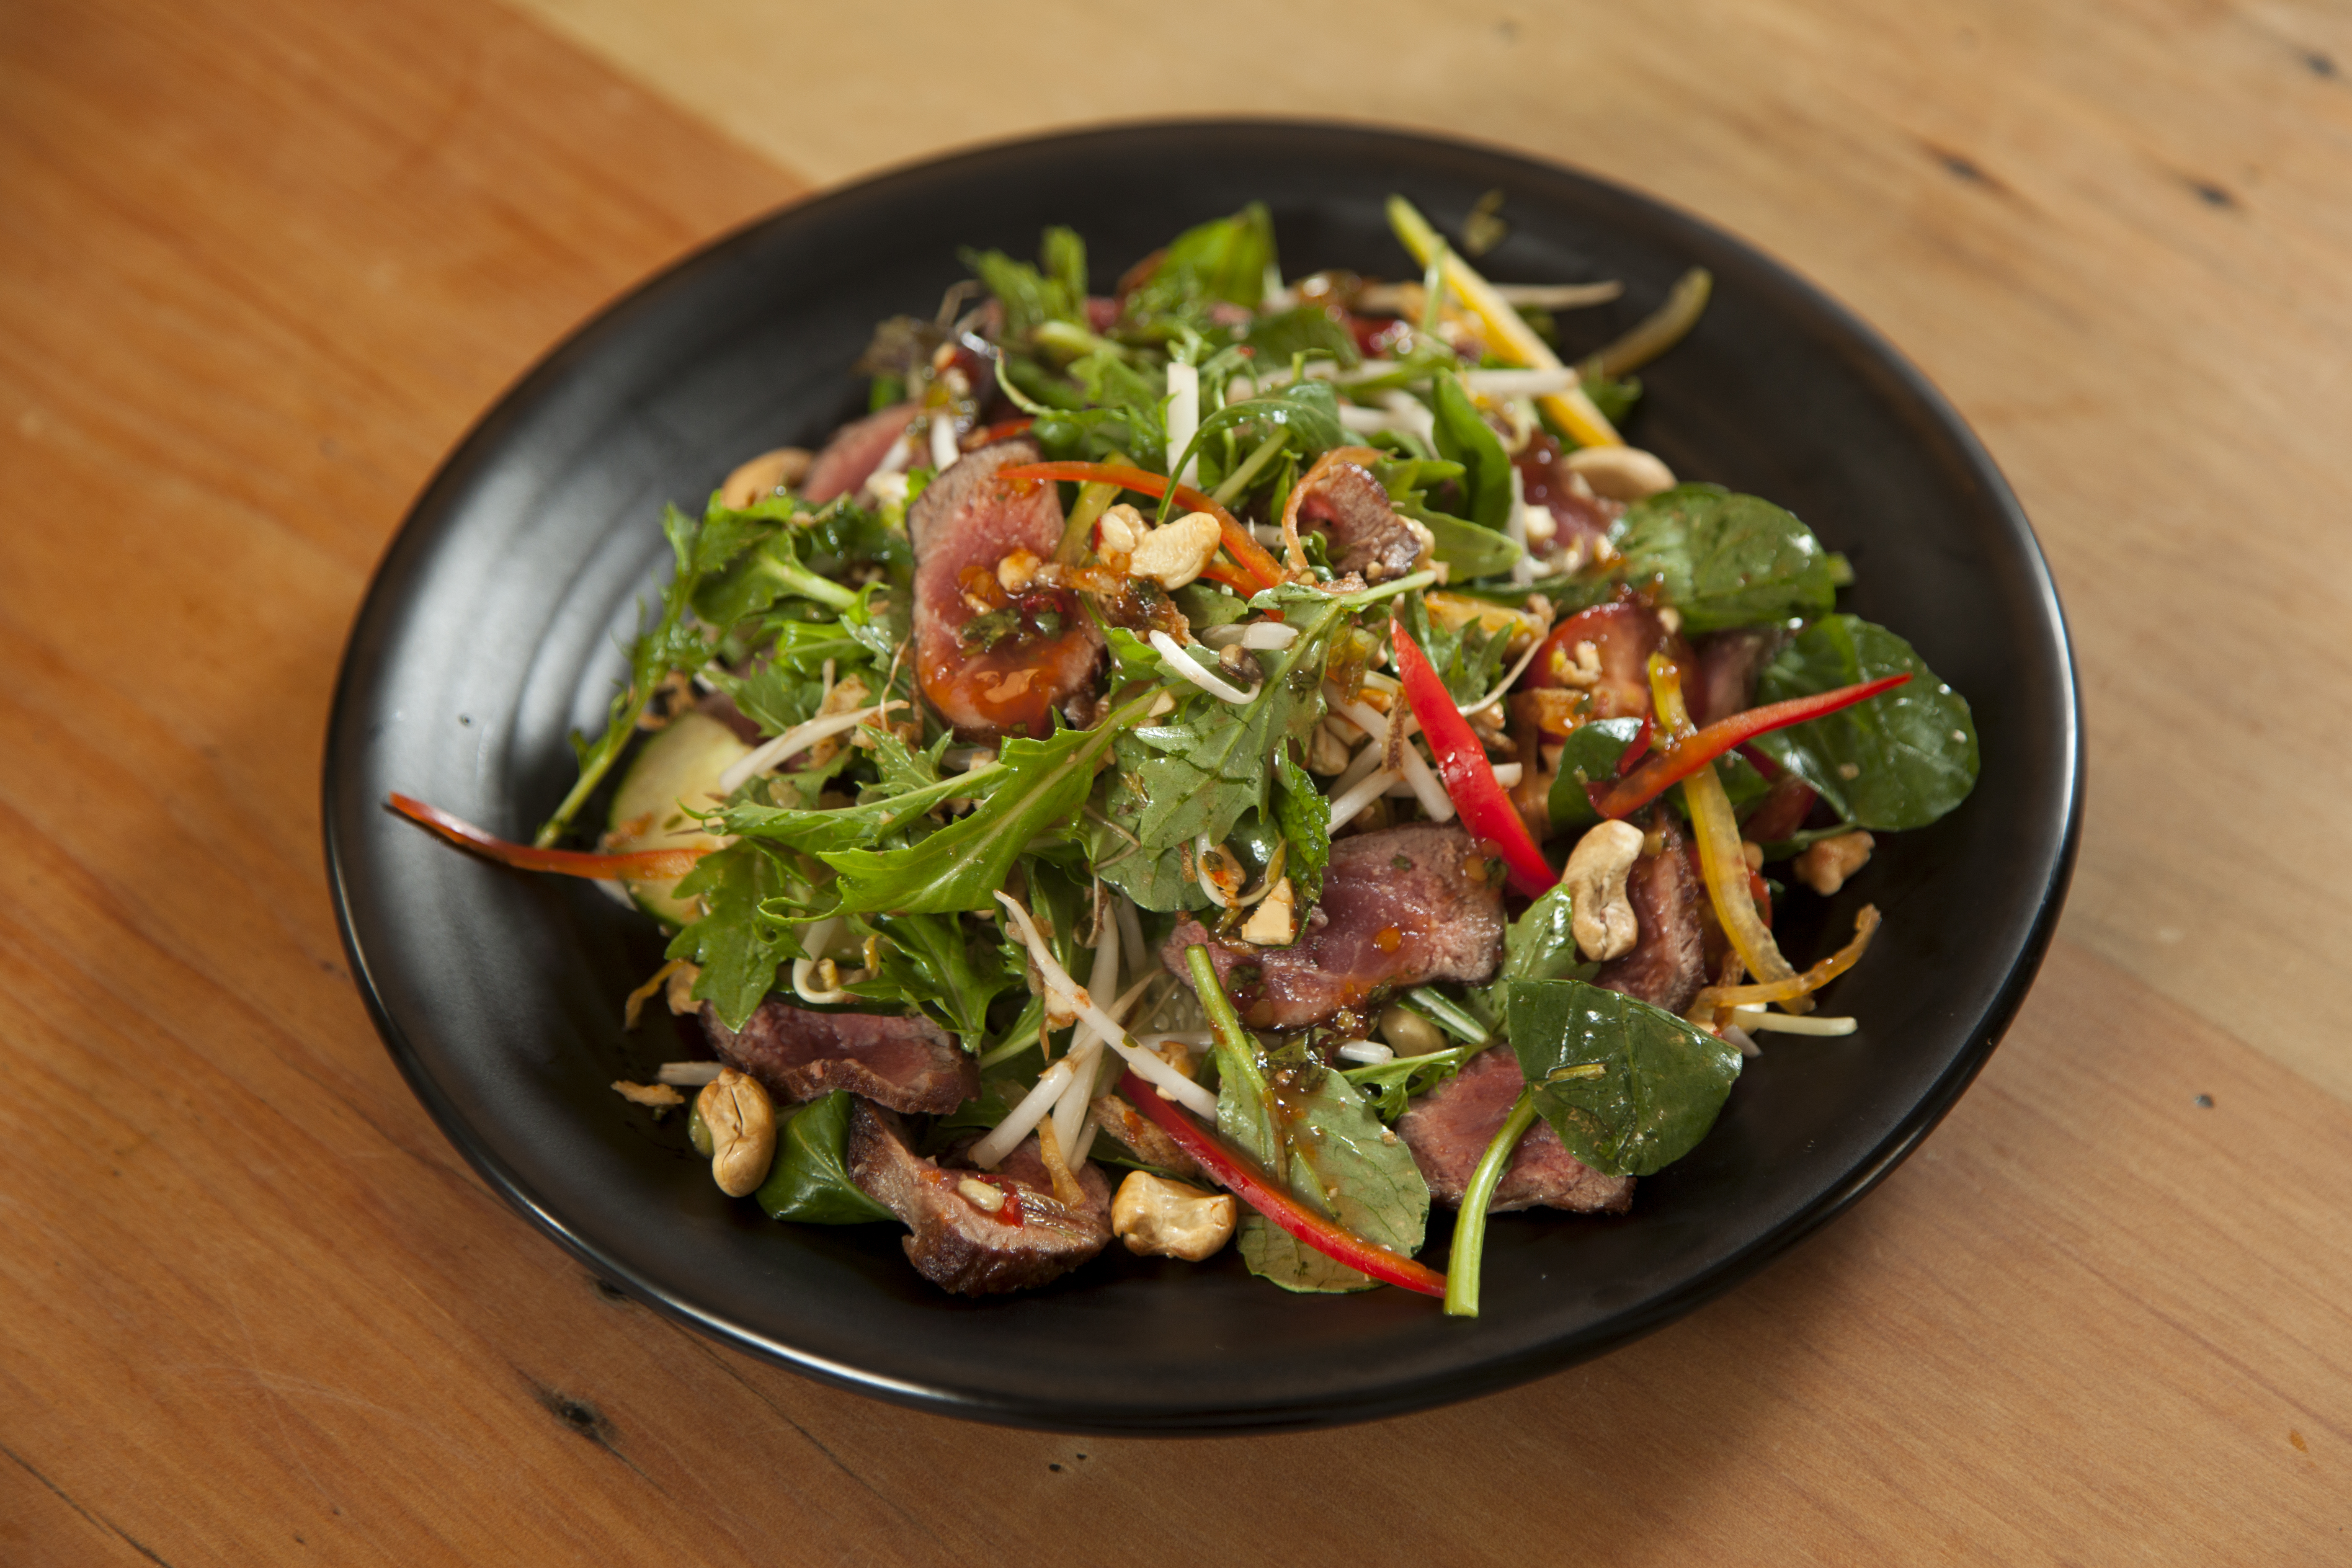 Succulent strips of beef tossed through an aromatic salad with a delicious traditional Thai chilli lime dressing, topped with toasted cashews [GF]